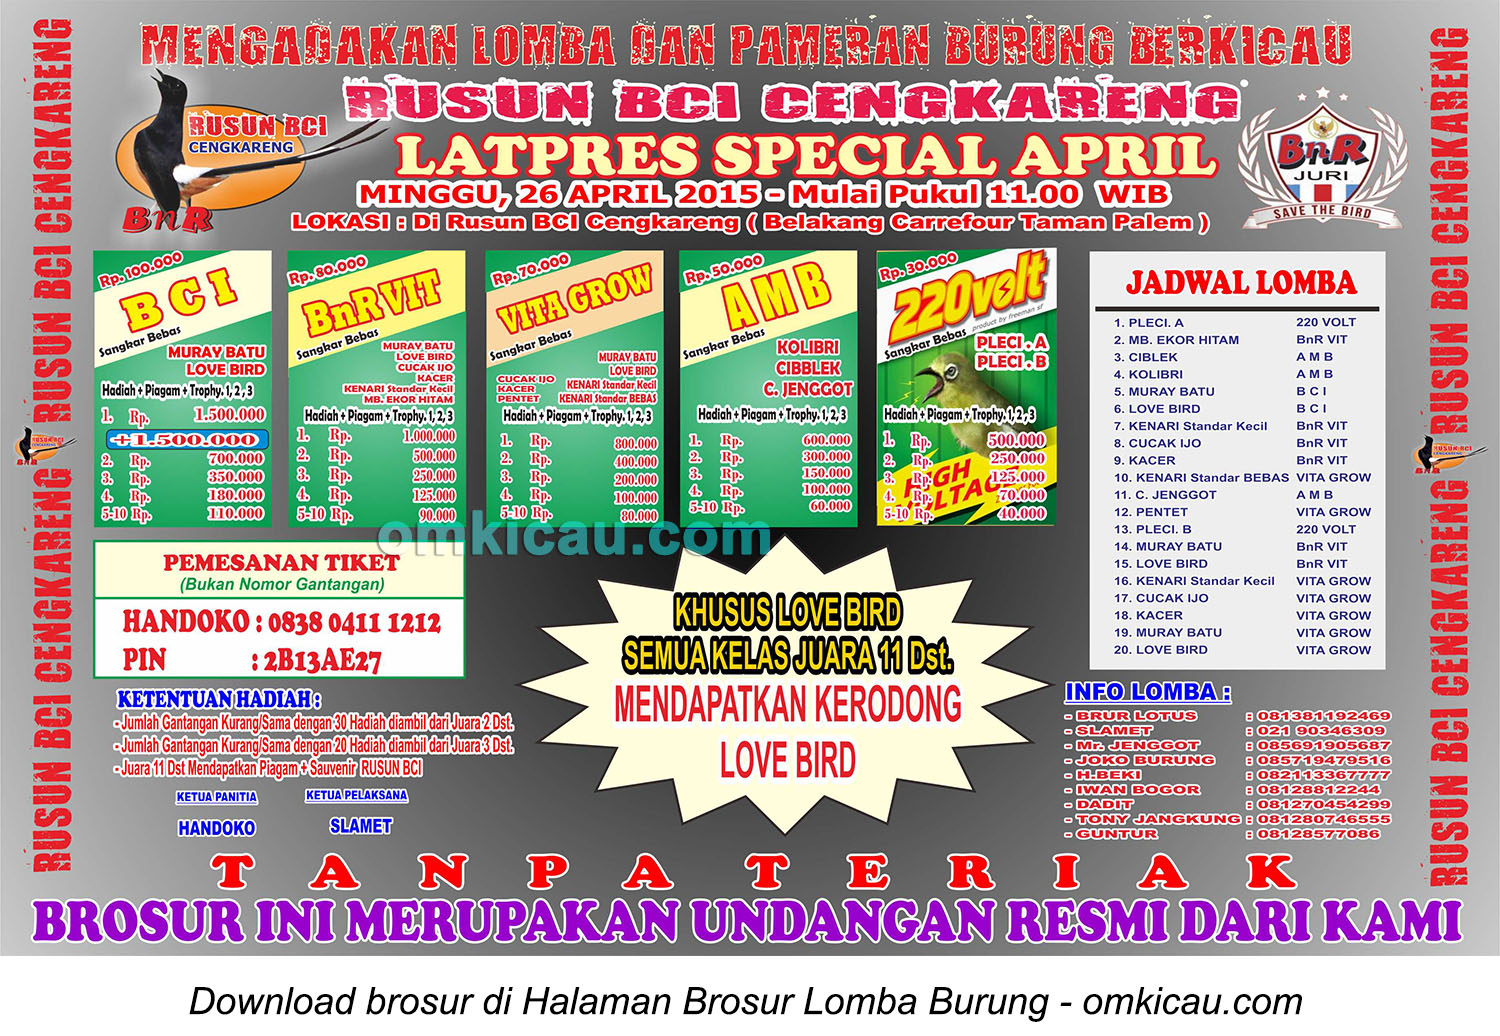 Brosur Latpres Special April - Rusun BCI Cengkareng, 26 April 2015